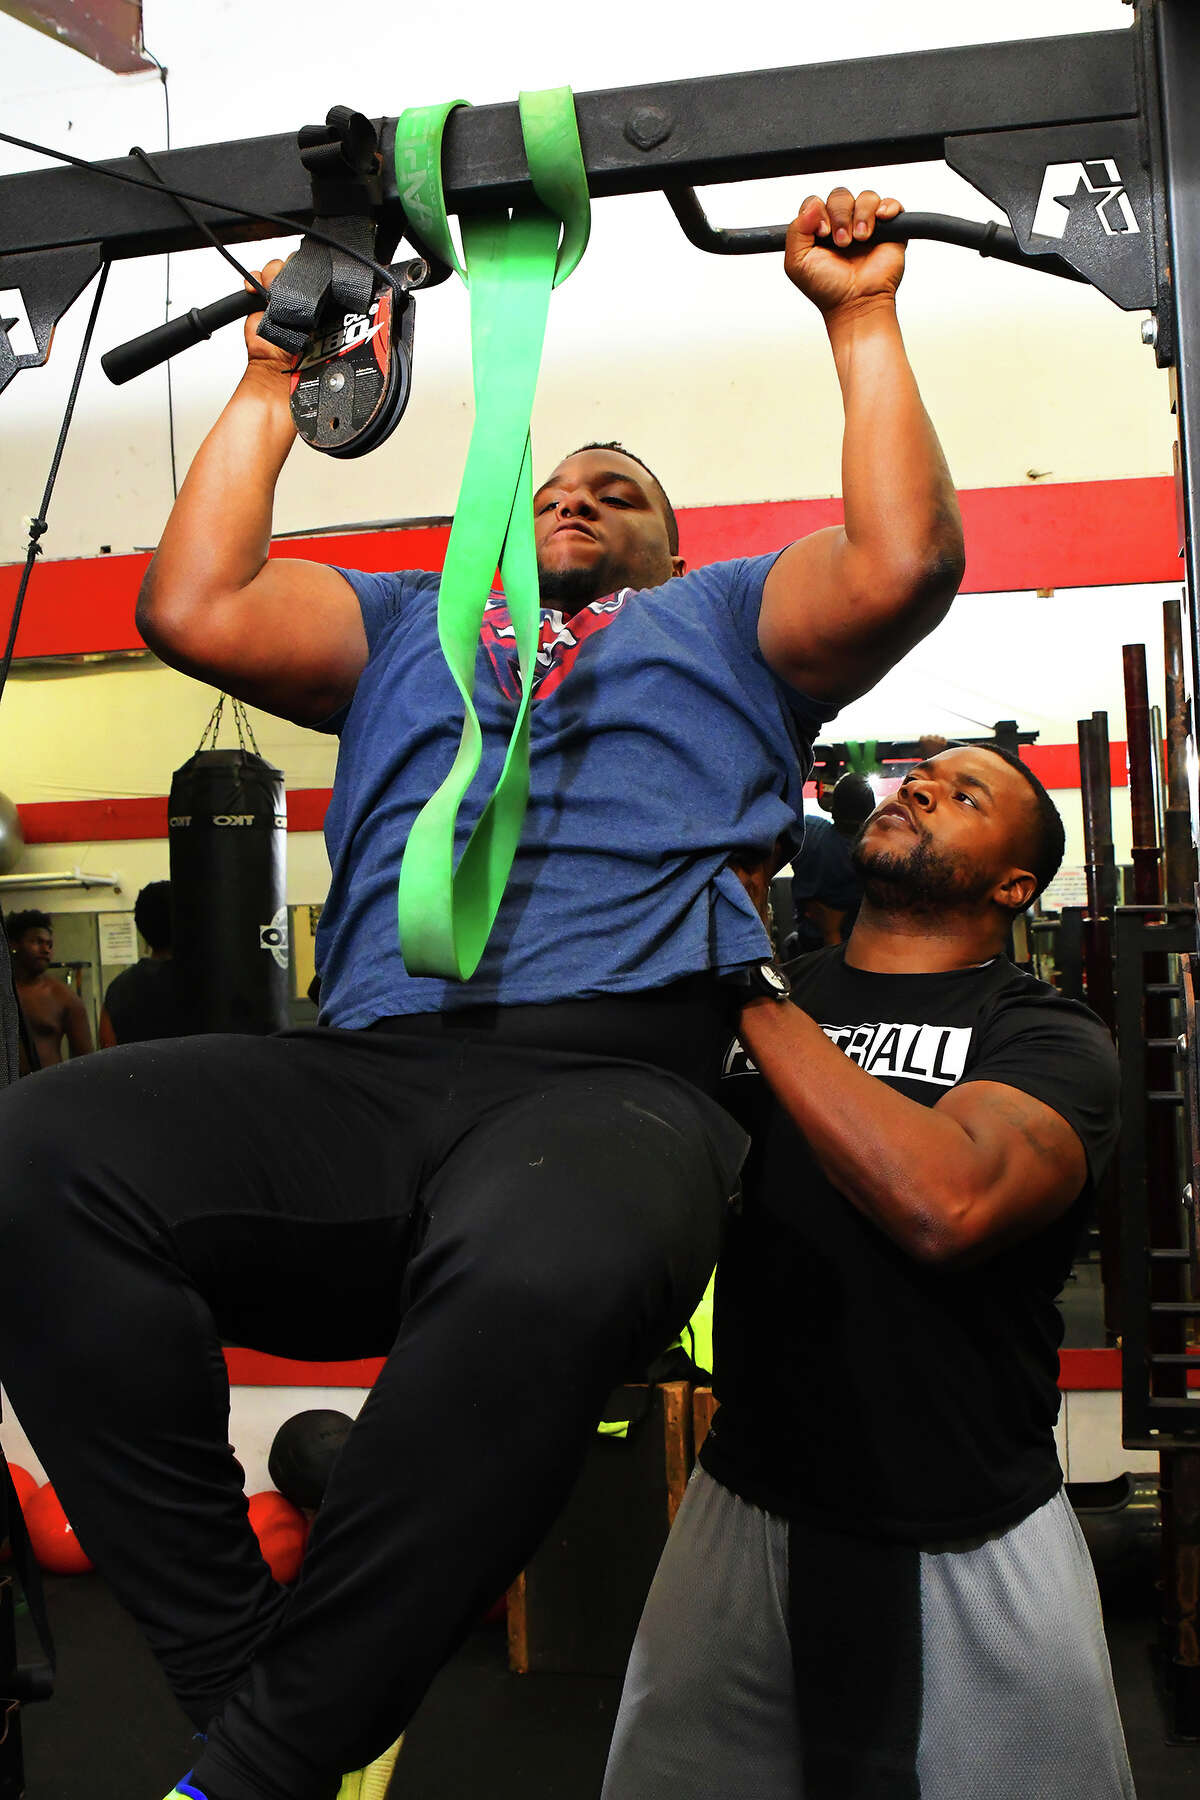 Cy-Fair defensive lineman Hunter Adams works out with Larry Brown. Adams credits Brown, along with Cy-Fair Head Coach Ed Pustejovsky, with preparing him for competing at the next level. Adams will be playing for West Point next year, with an eye towards competing in the NFL.